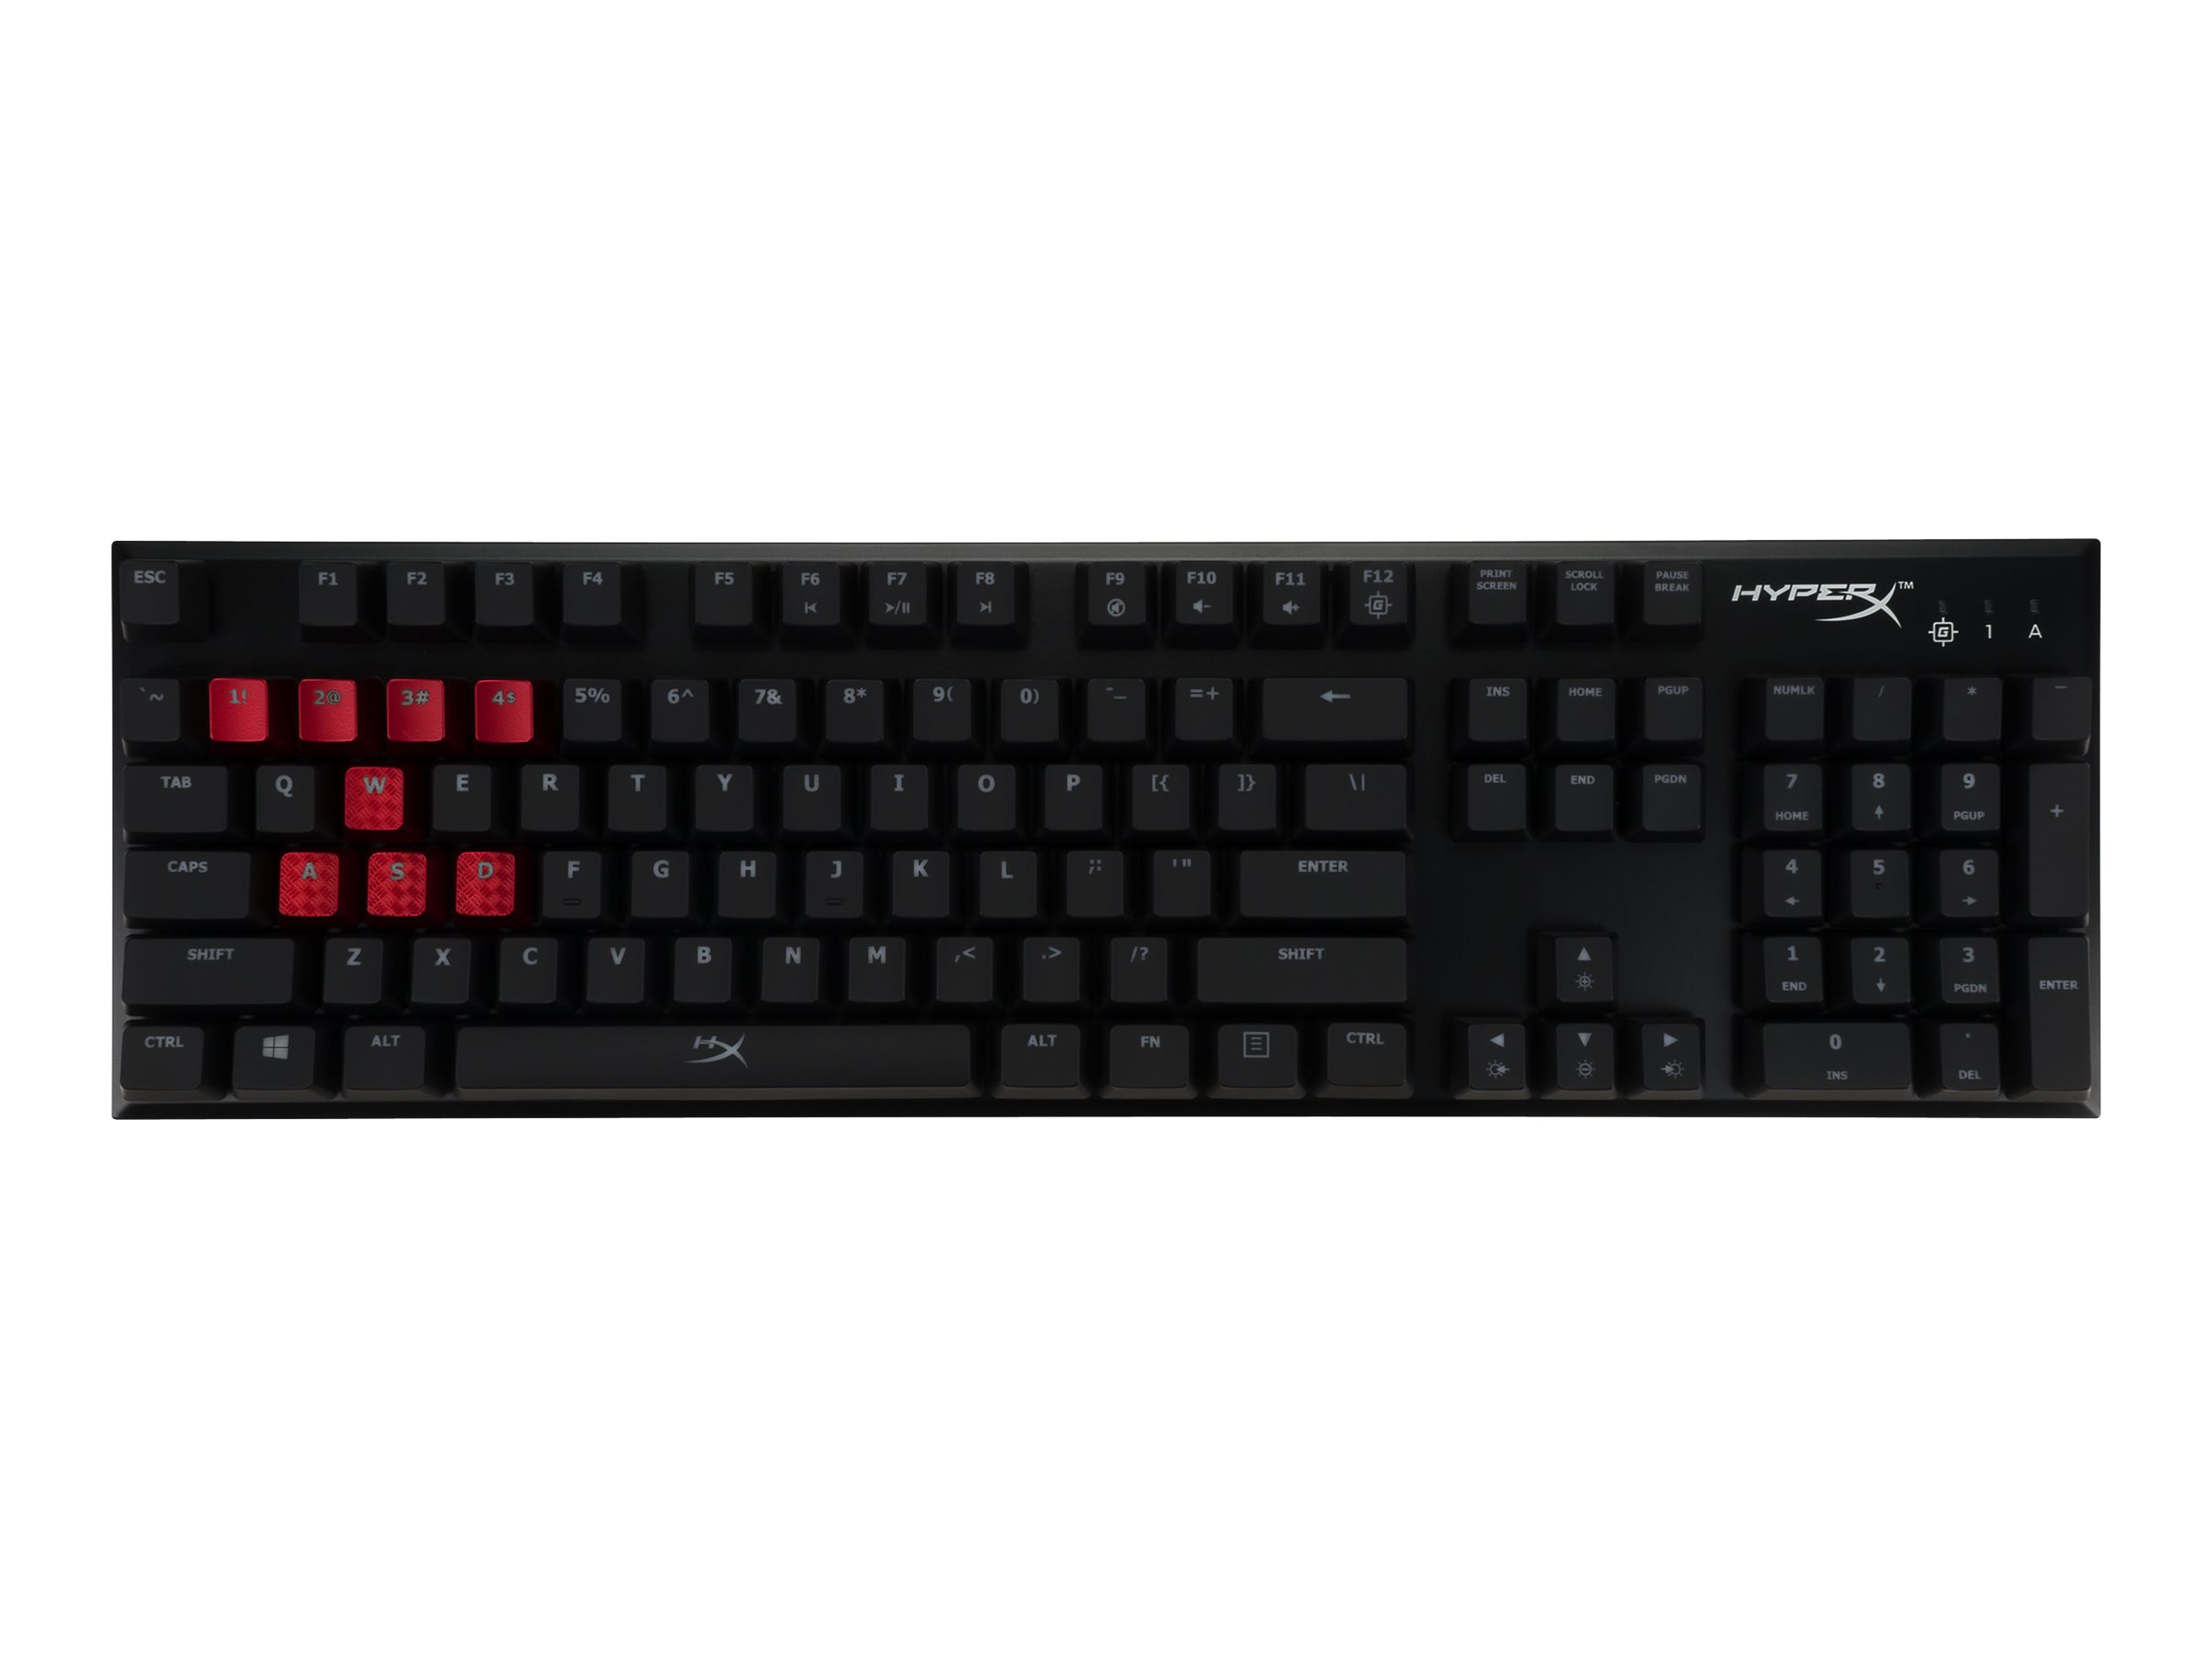 HyperX Alloy FPS Mechanical Gaming - Tastatur - hintergrundbeleuchtet - USB - Deutsch - Schlüsselschalter: CHERRY MX Blue